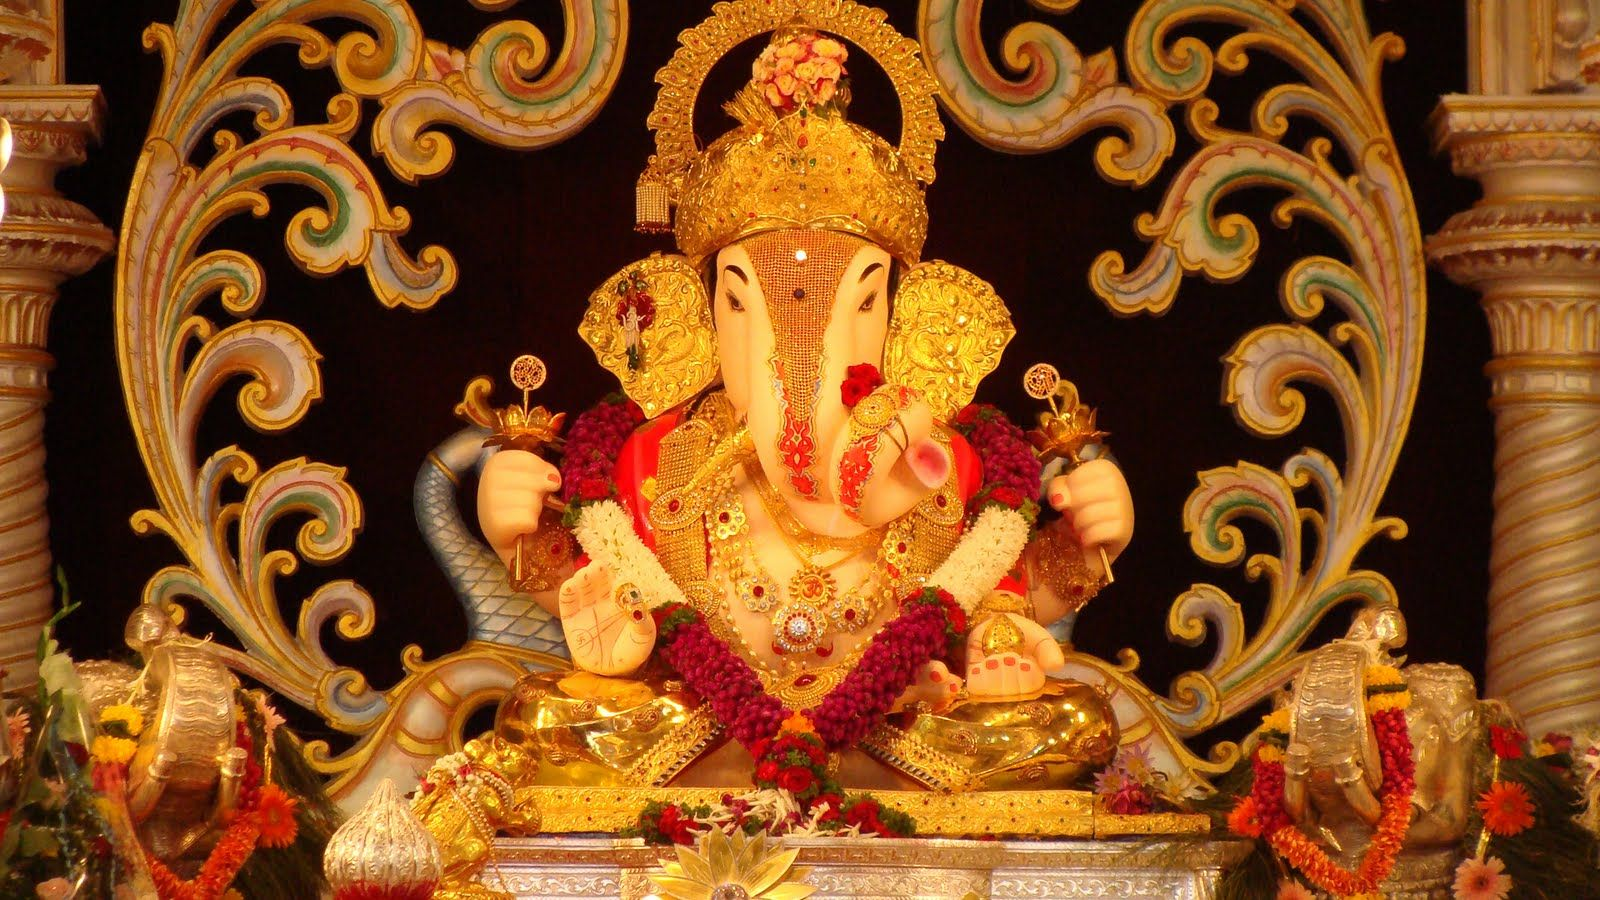 New blog pics dagdusheth ganpati wallpaper free download new blog pics dagdusheth ganpati wallpaper free download thecheapjerseys Choice Image